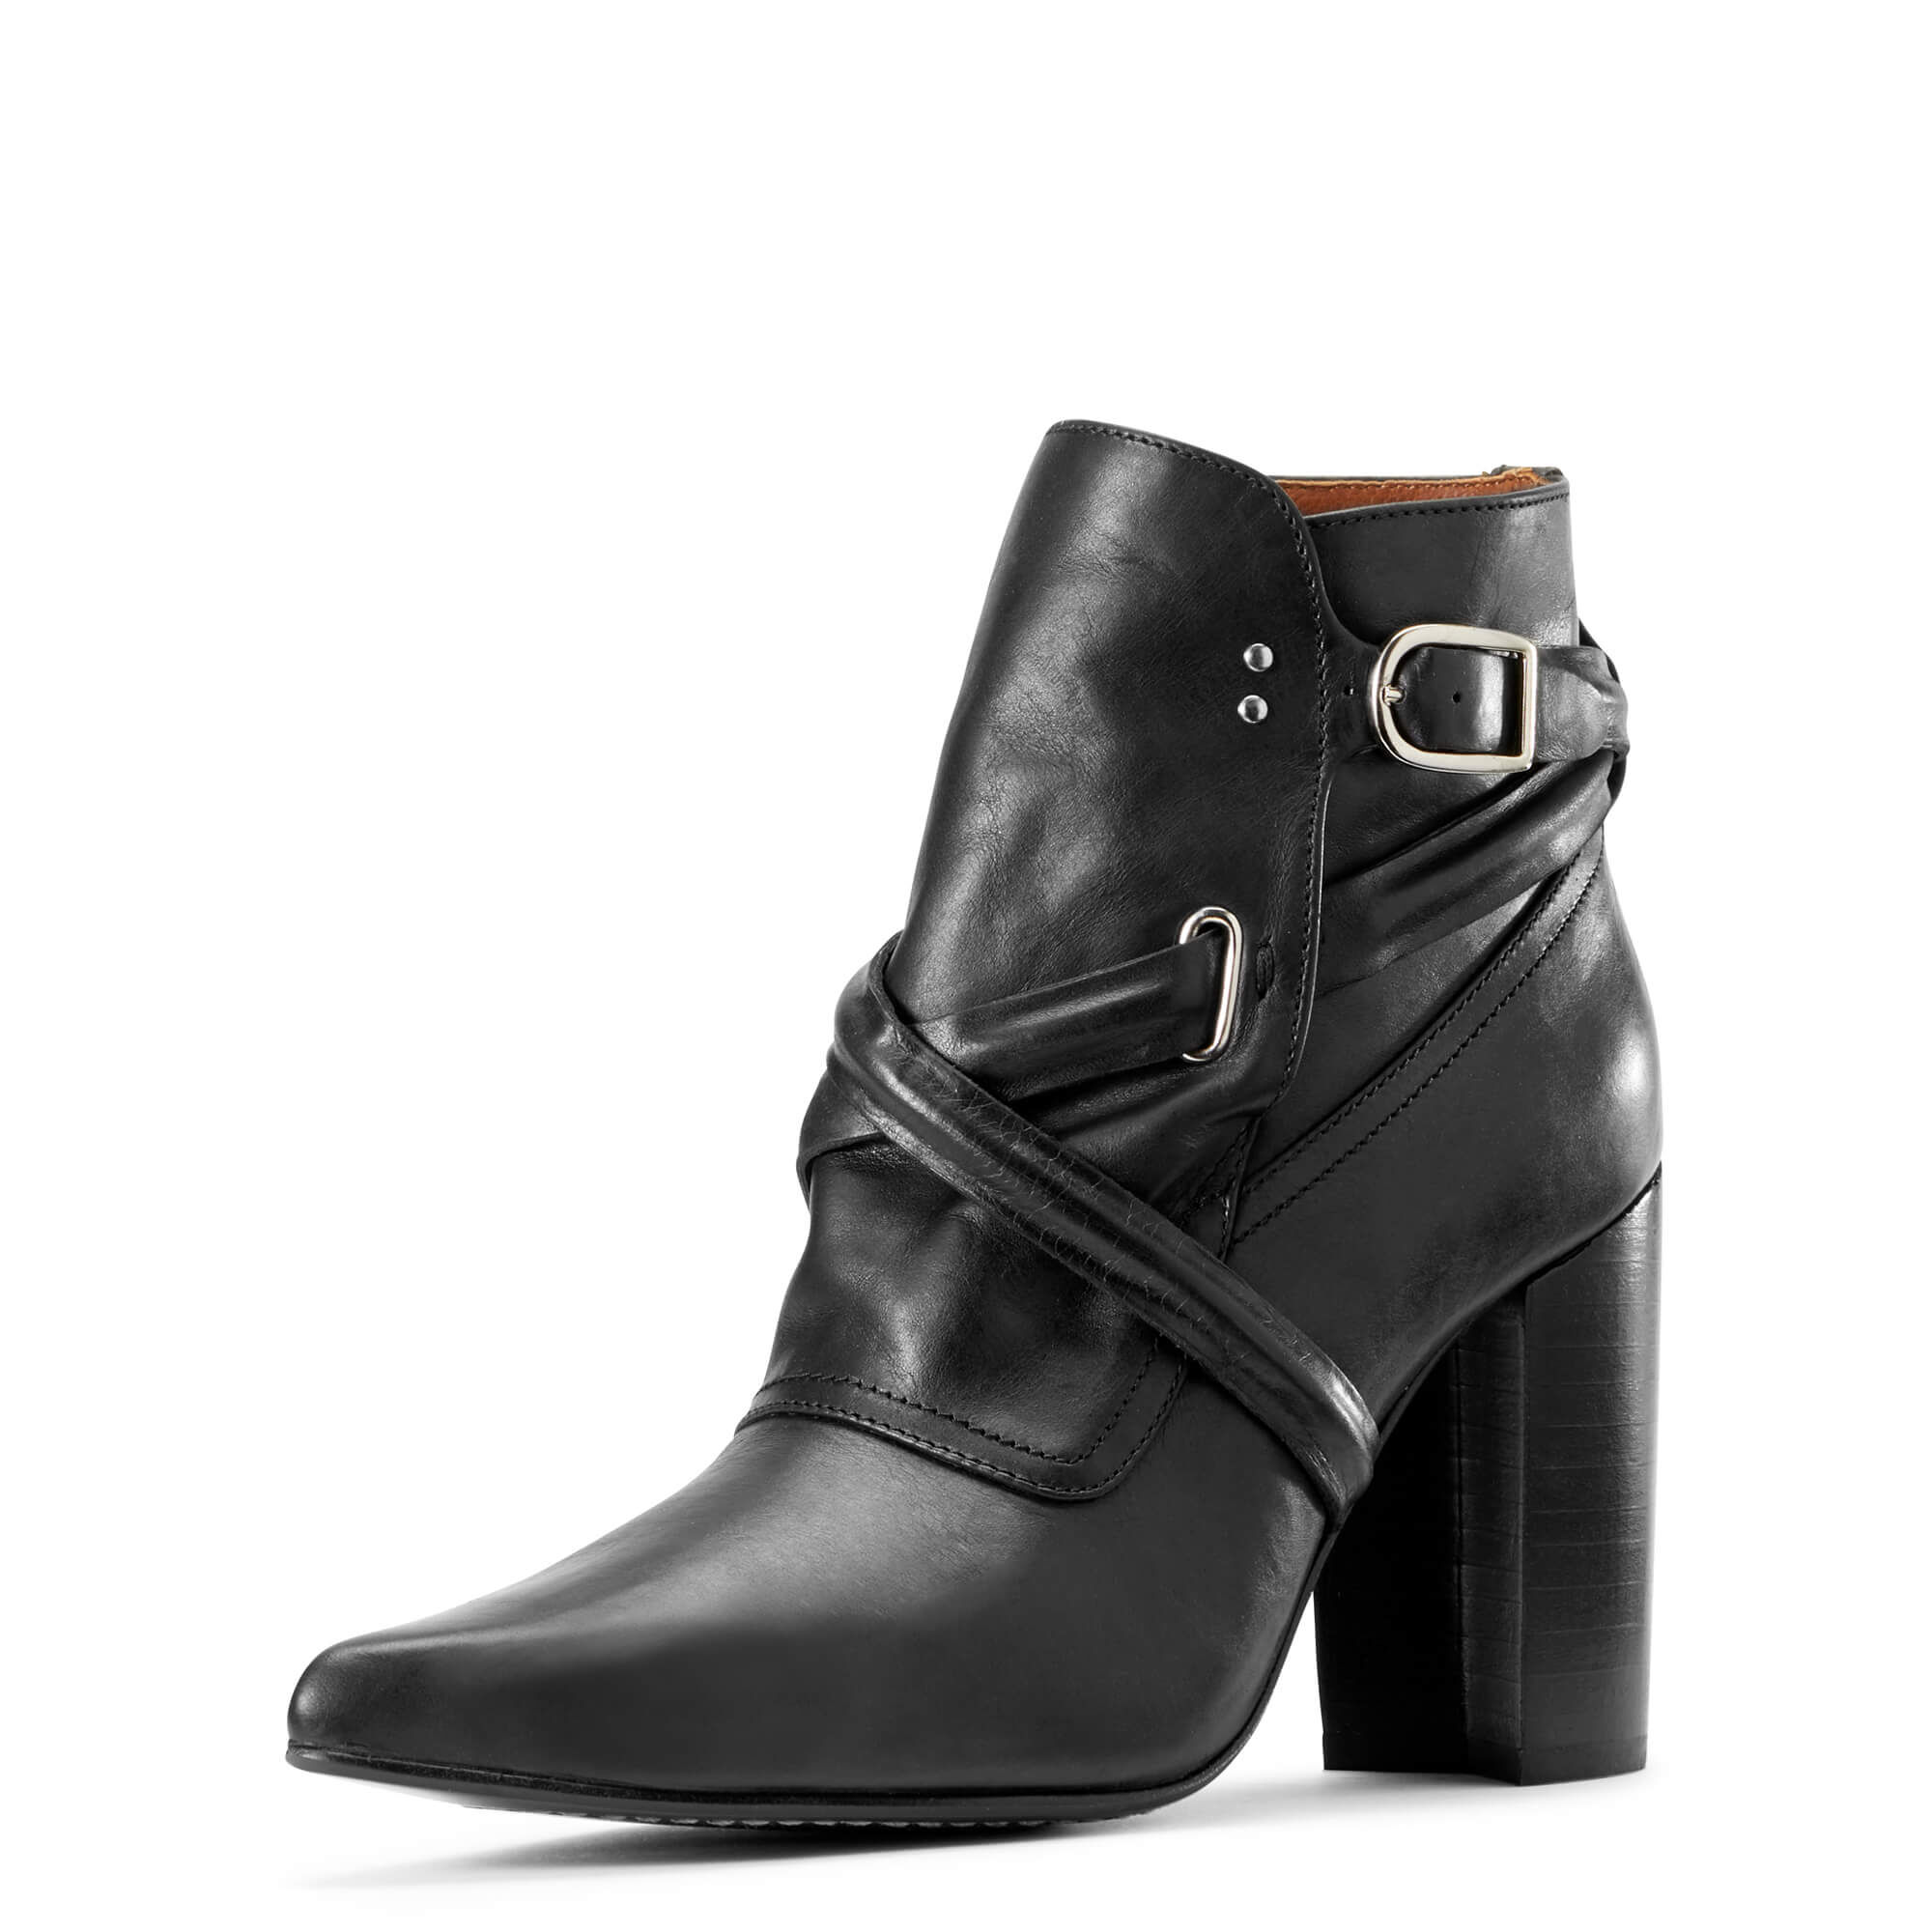 Women's Dimond Boots in Black Leather by Ariat Two24